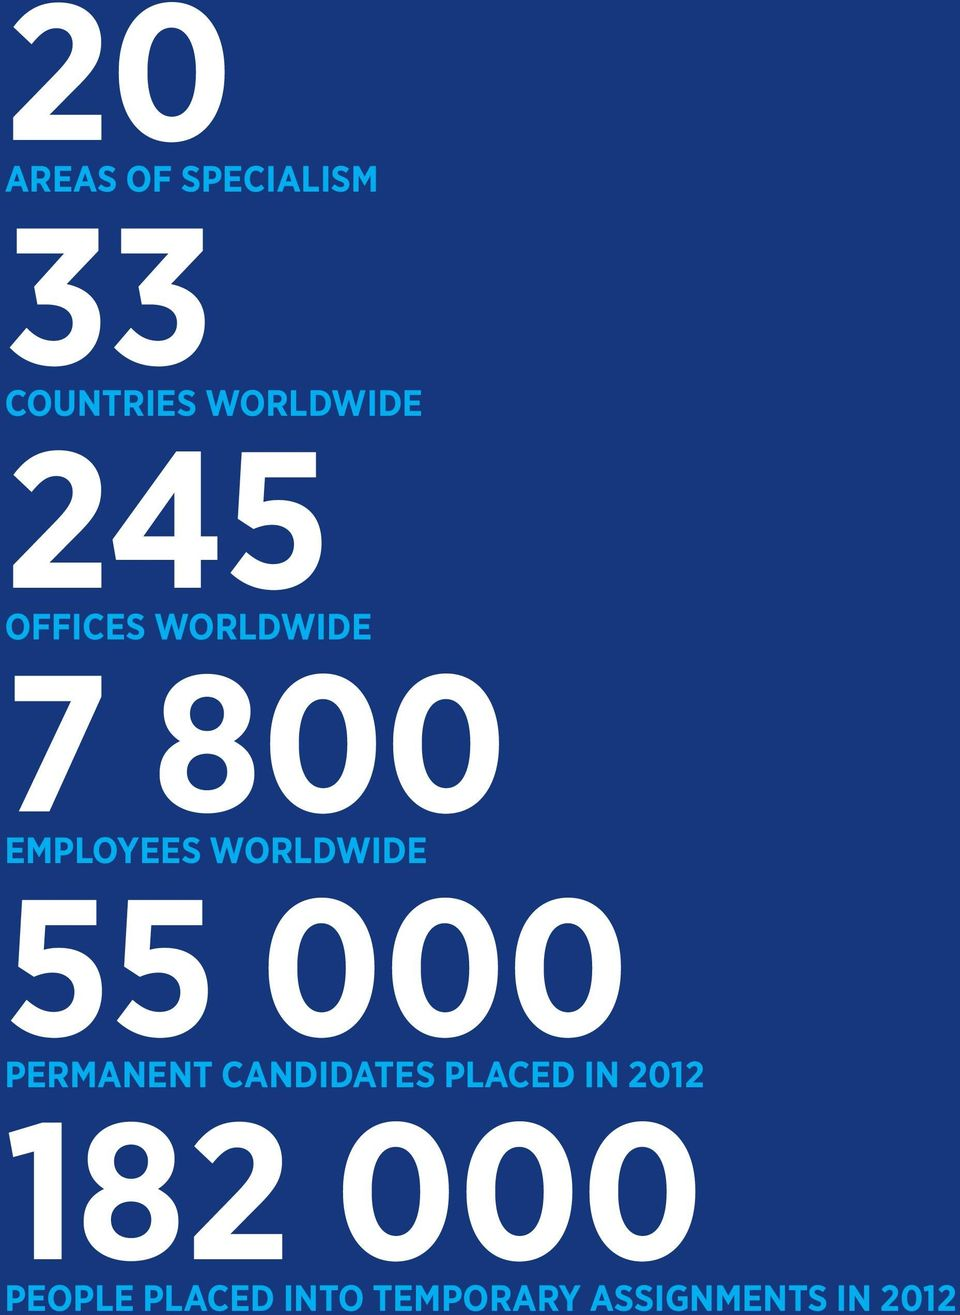 55 000 PERMANENT CANDIDATES PLACED IN 2012 182